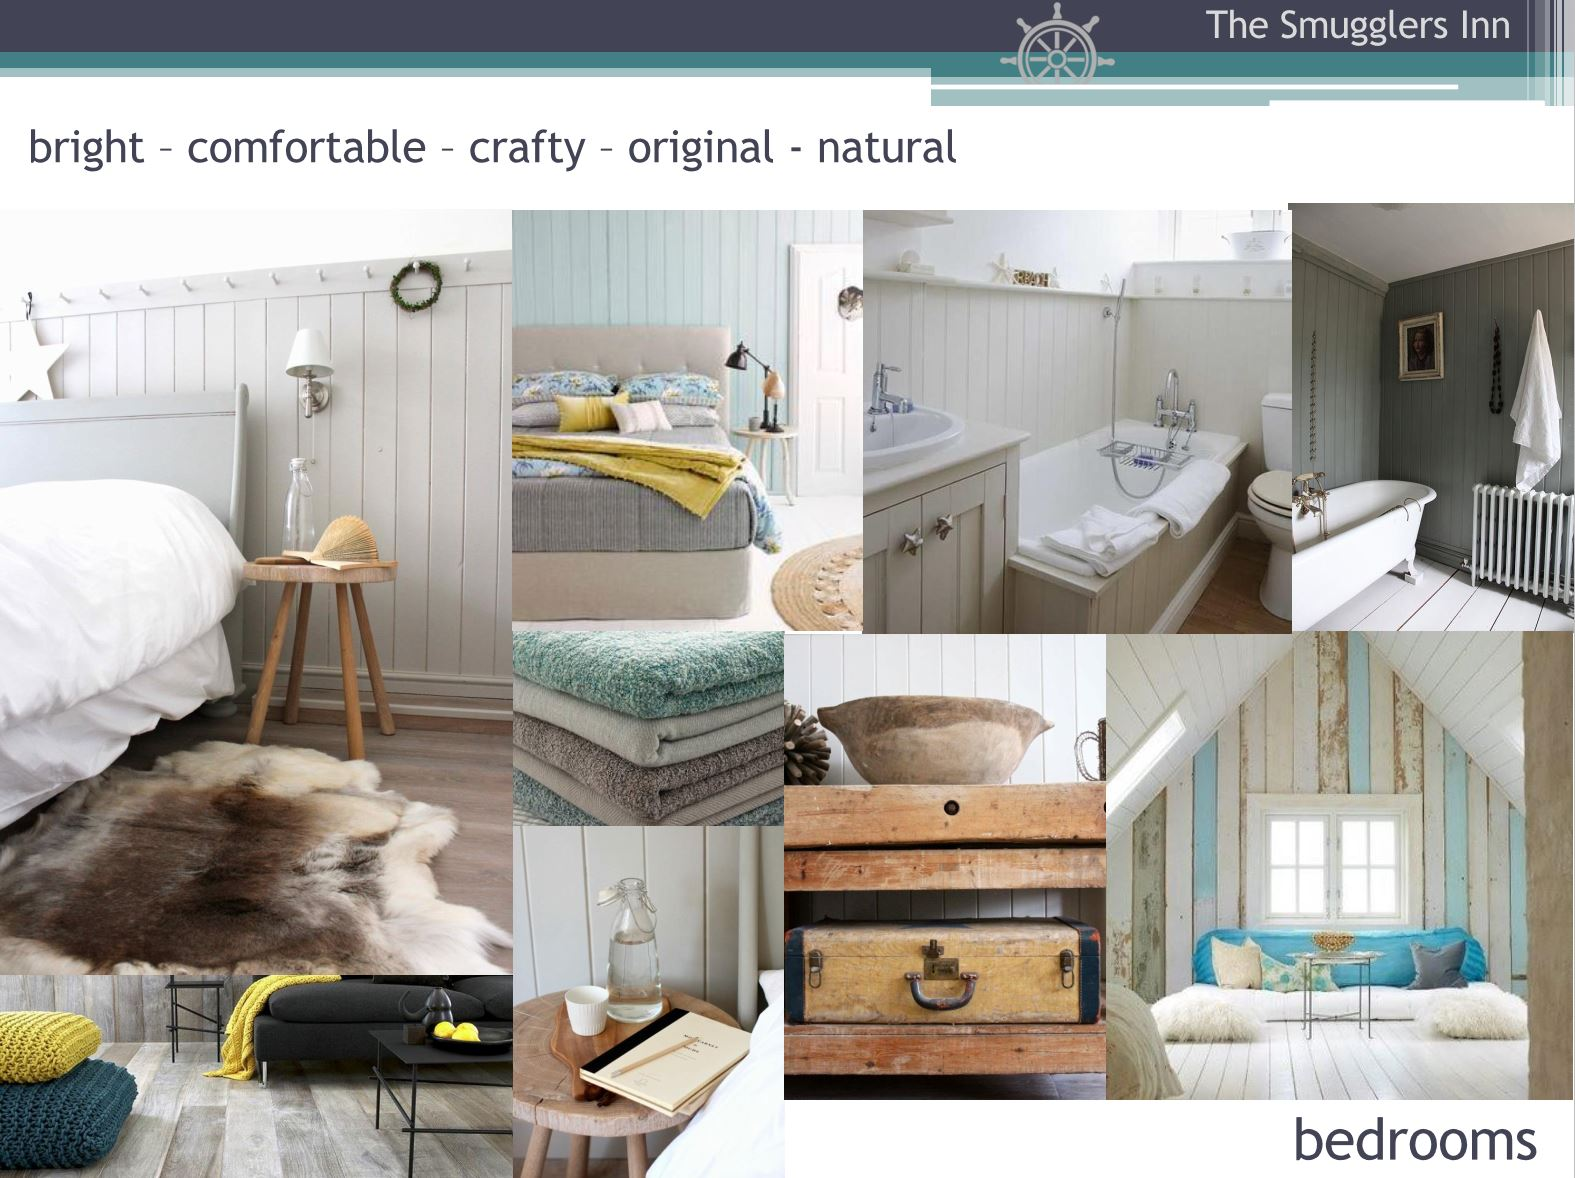 Hotel Fitout-Smugglers Inn-Mood Board-Bedrooms